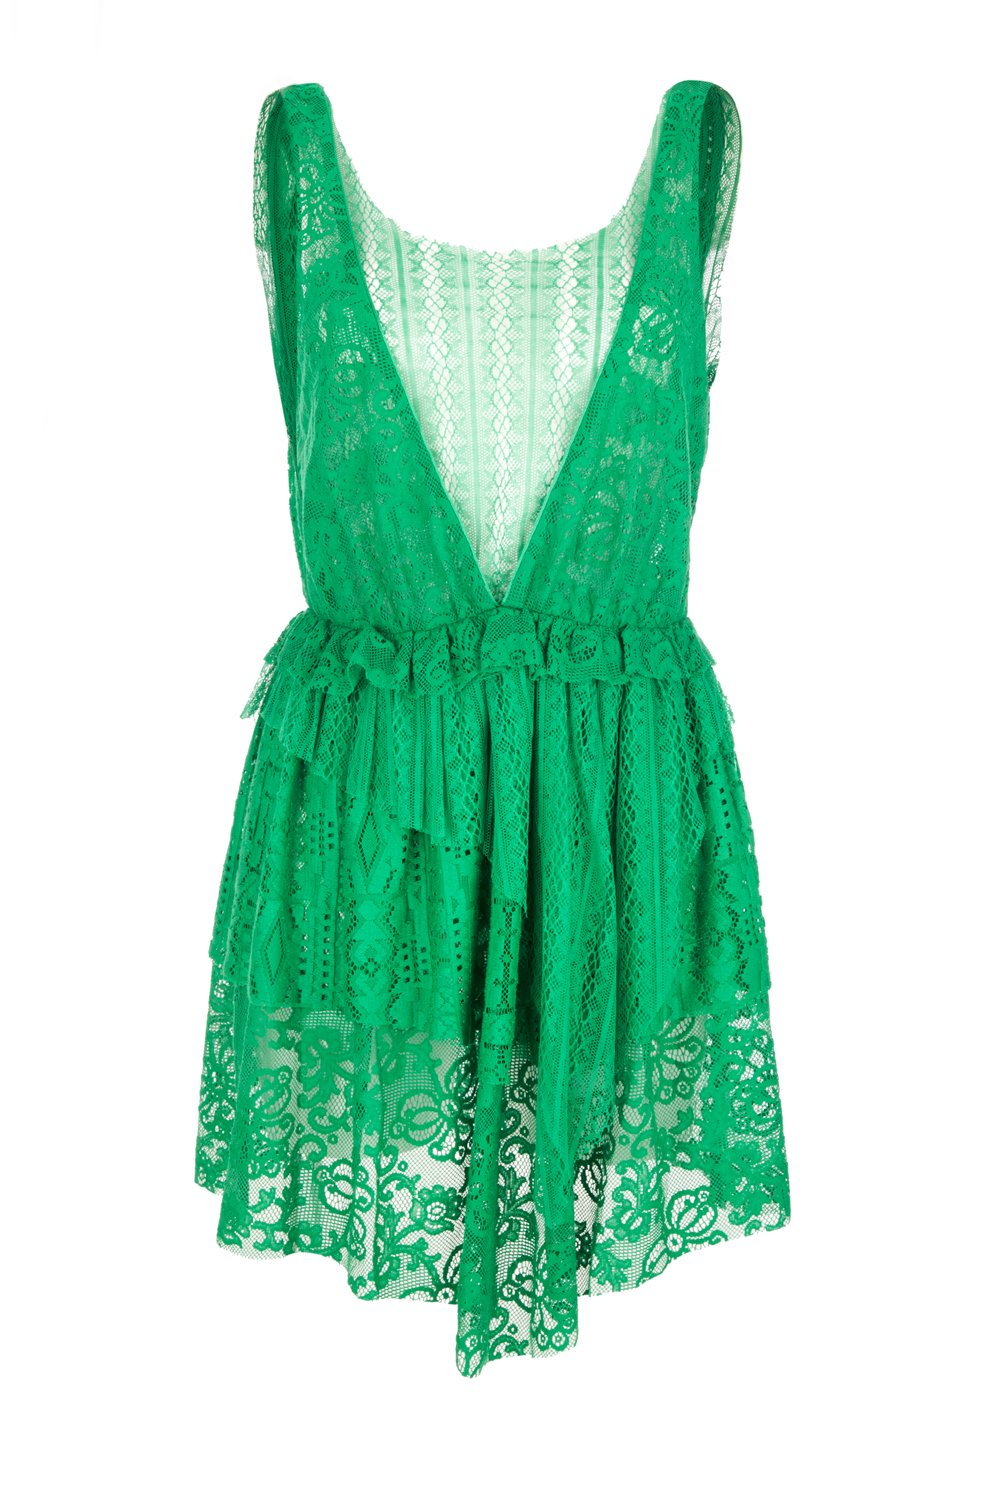 Hercule dress in palm lace